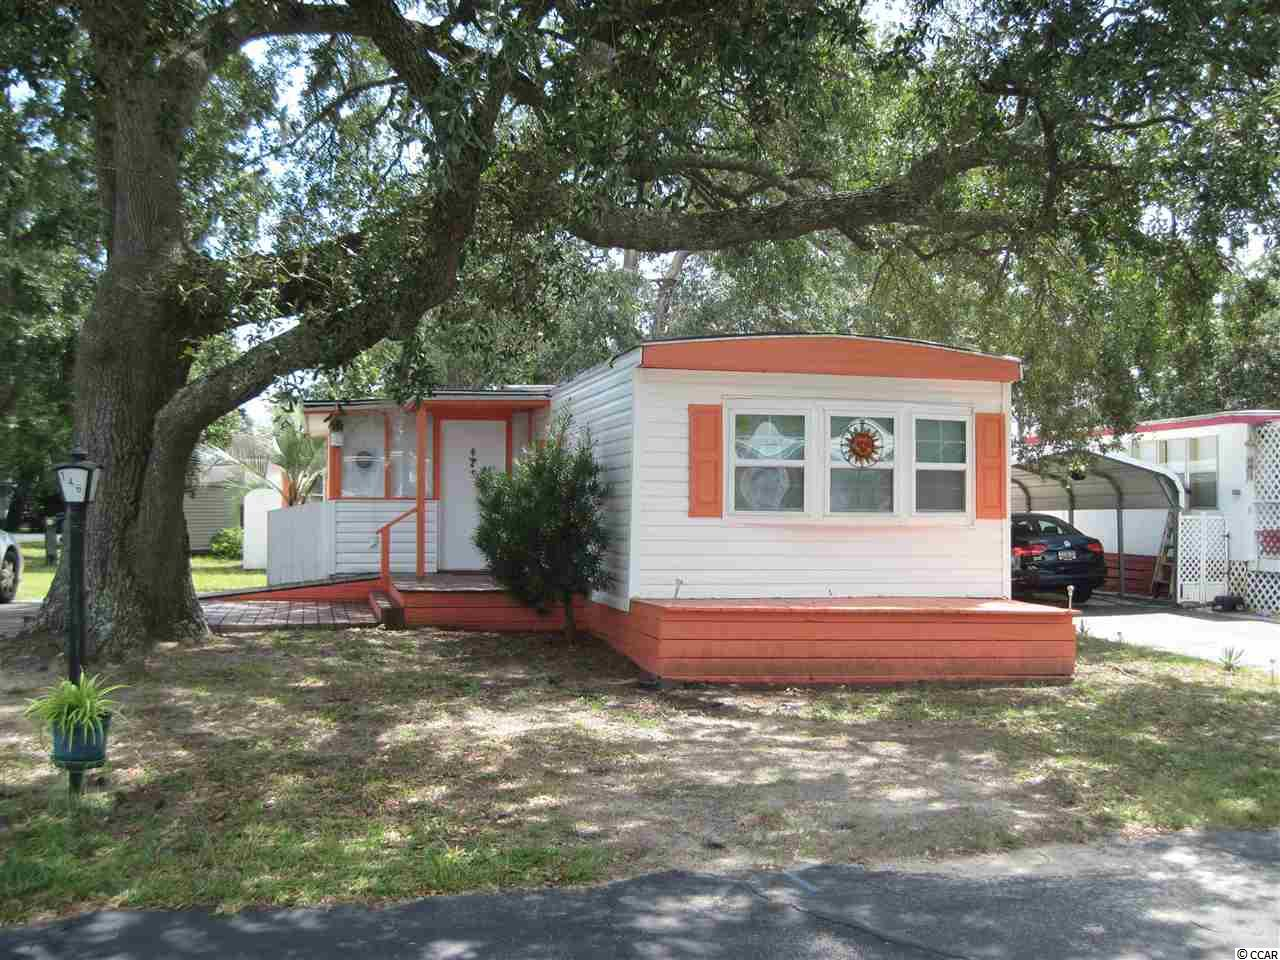 Single Family Home for Sale at 146 Ridgeway Loop 146 Ridgeway Loop Murrells Inlet, South Carolina 29576 United States